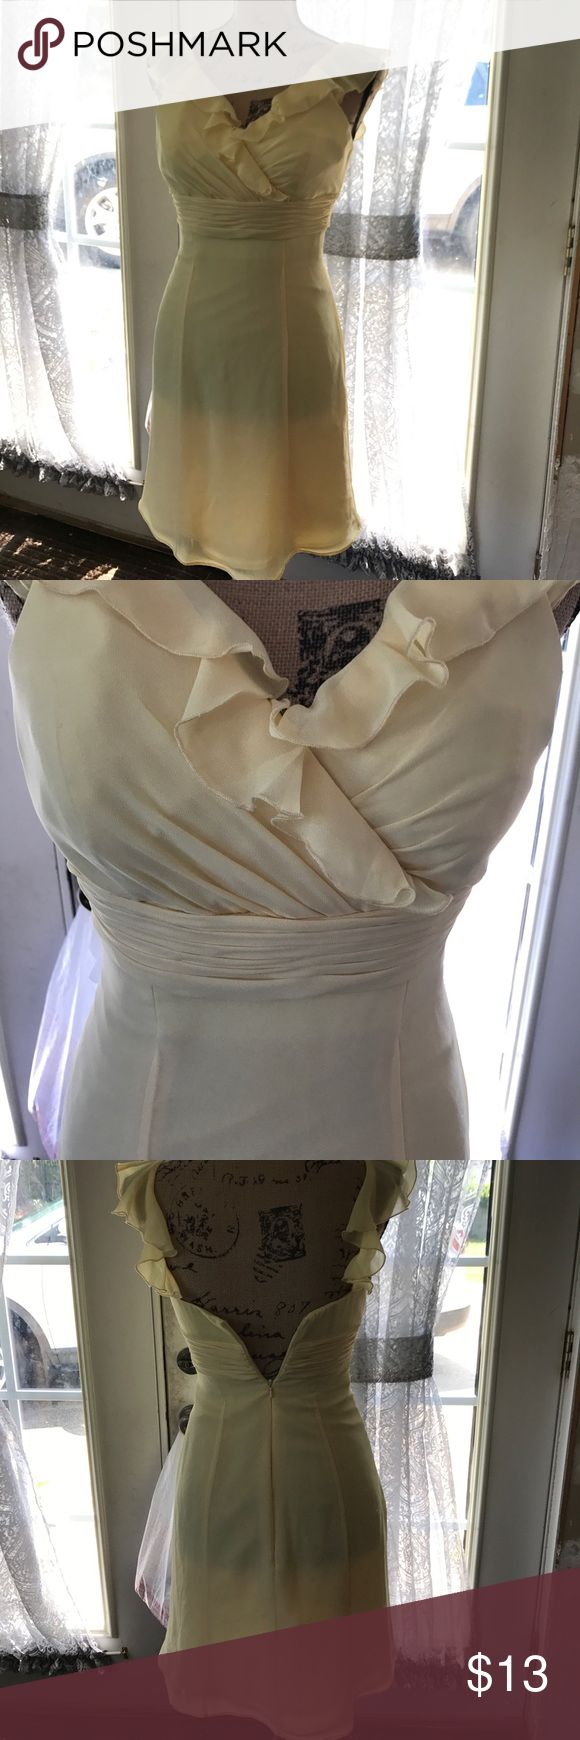 Women's Light Yellow Sundress Light yellow flowy Sundress by B2. No flaws at all. Size 2z made of 100% polyester. Butterfly sleeves. Zips and snaps up the back. Pleated waistband gives a nice trim effect. EUC. Only worn once. B2 Dresses Midi